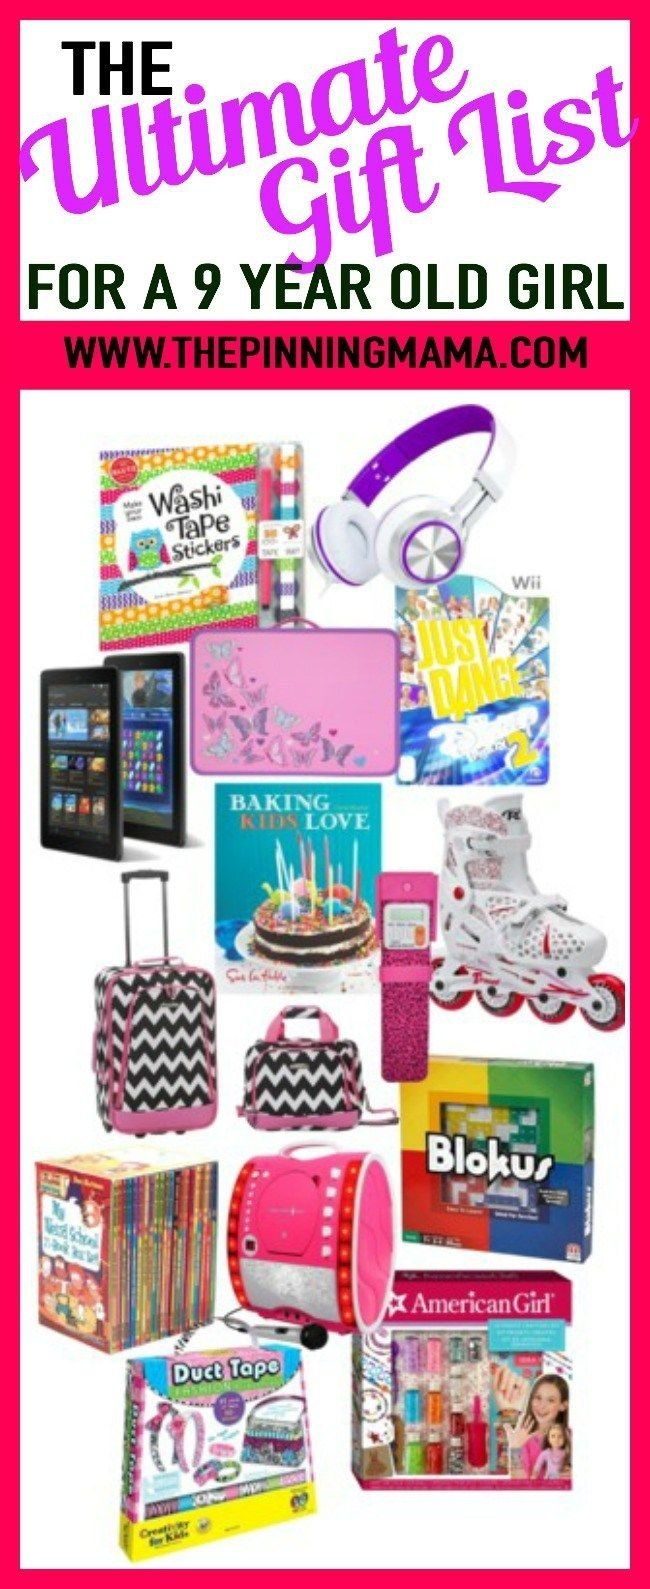 10 Attractive Girls Birthday Party Ideas Age 9 The Ultimate Gift List For A Year